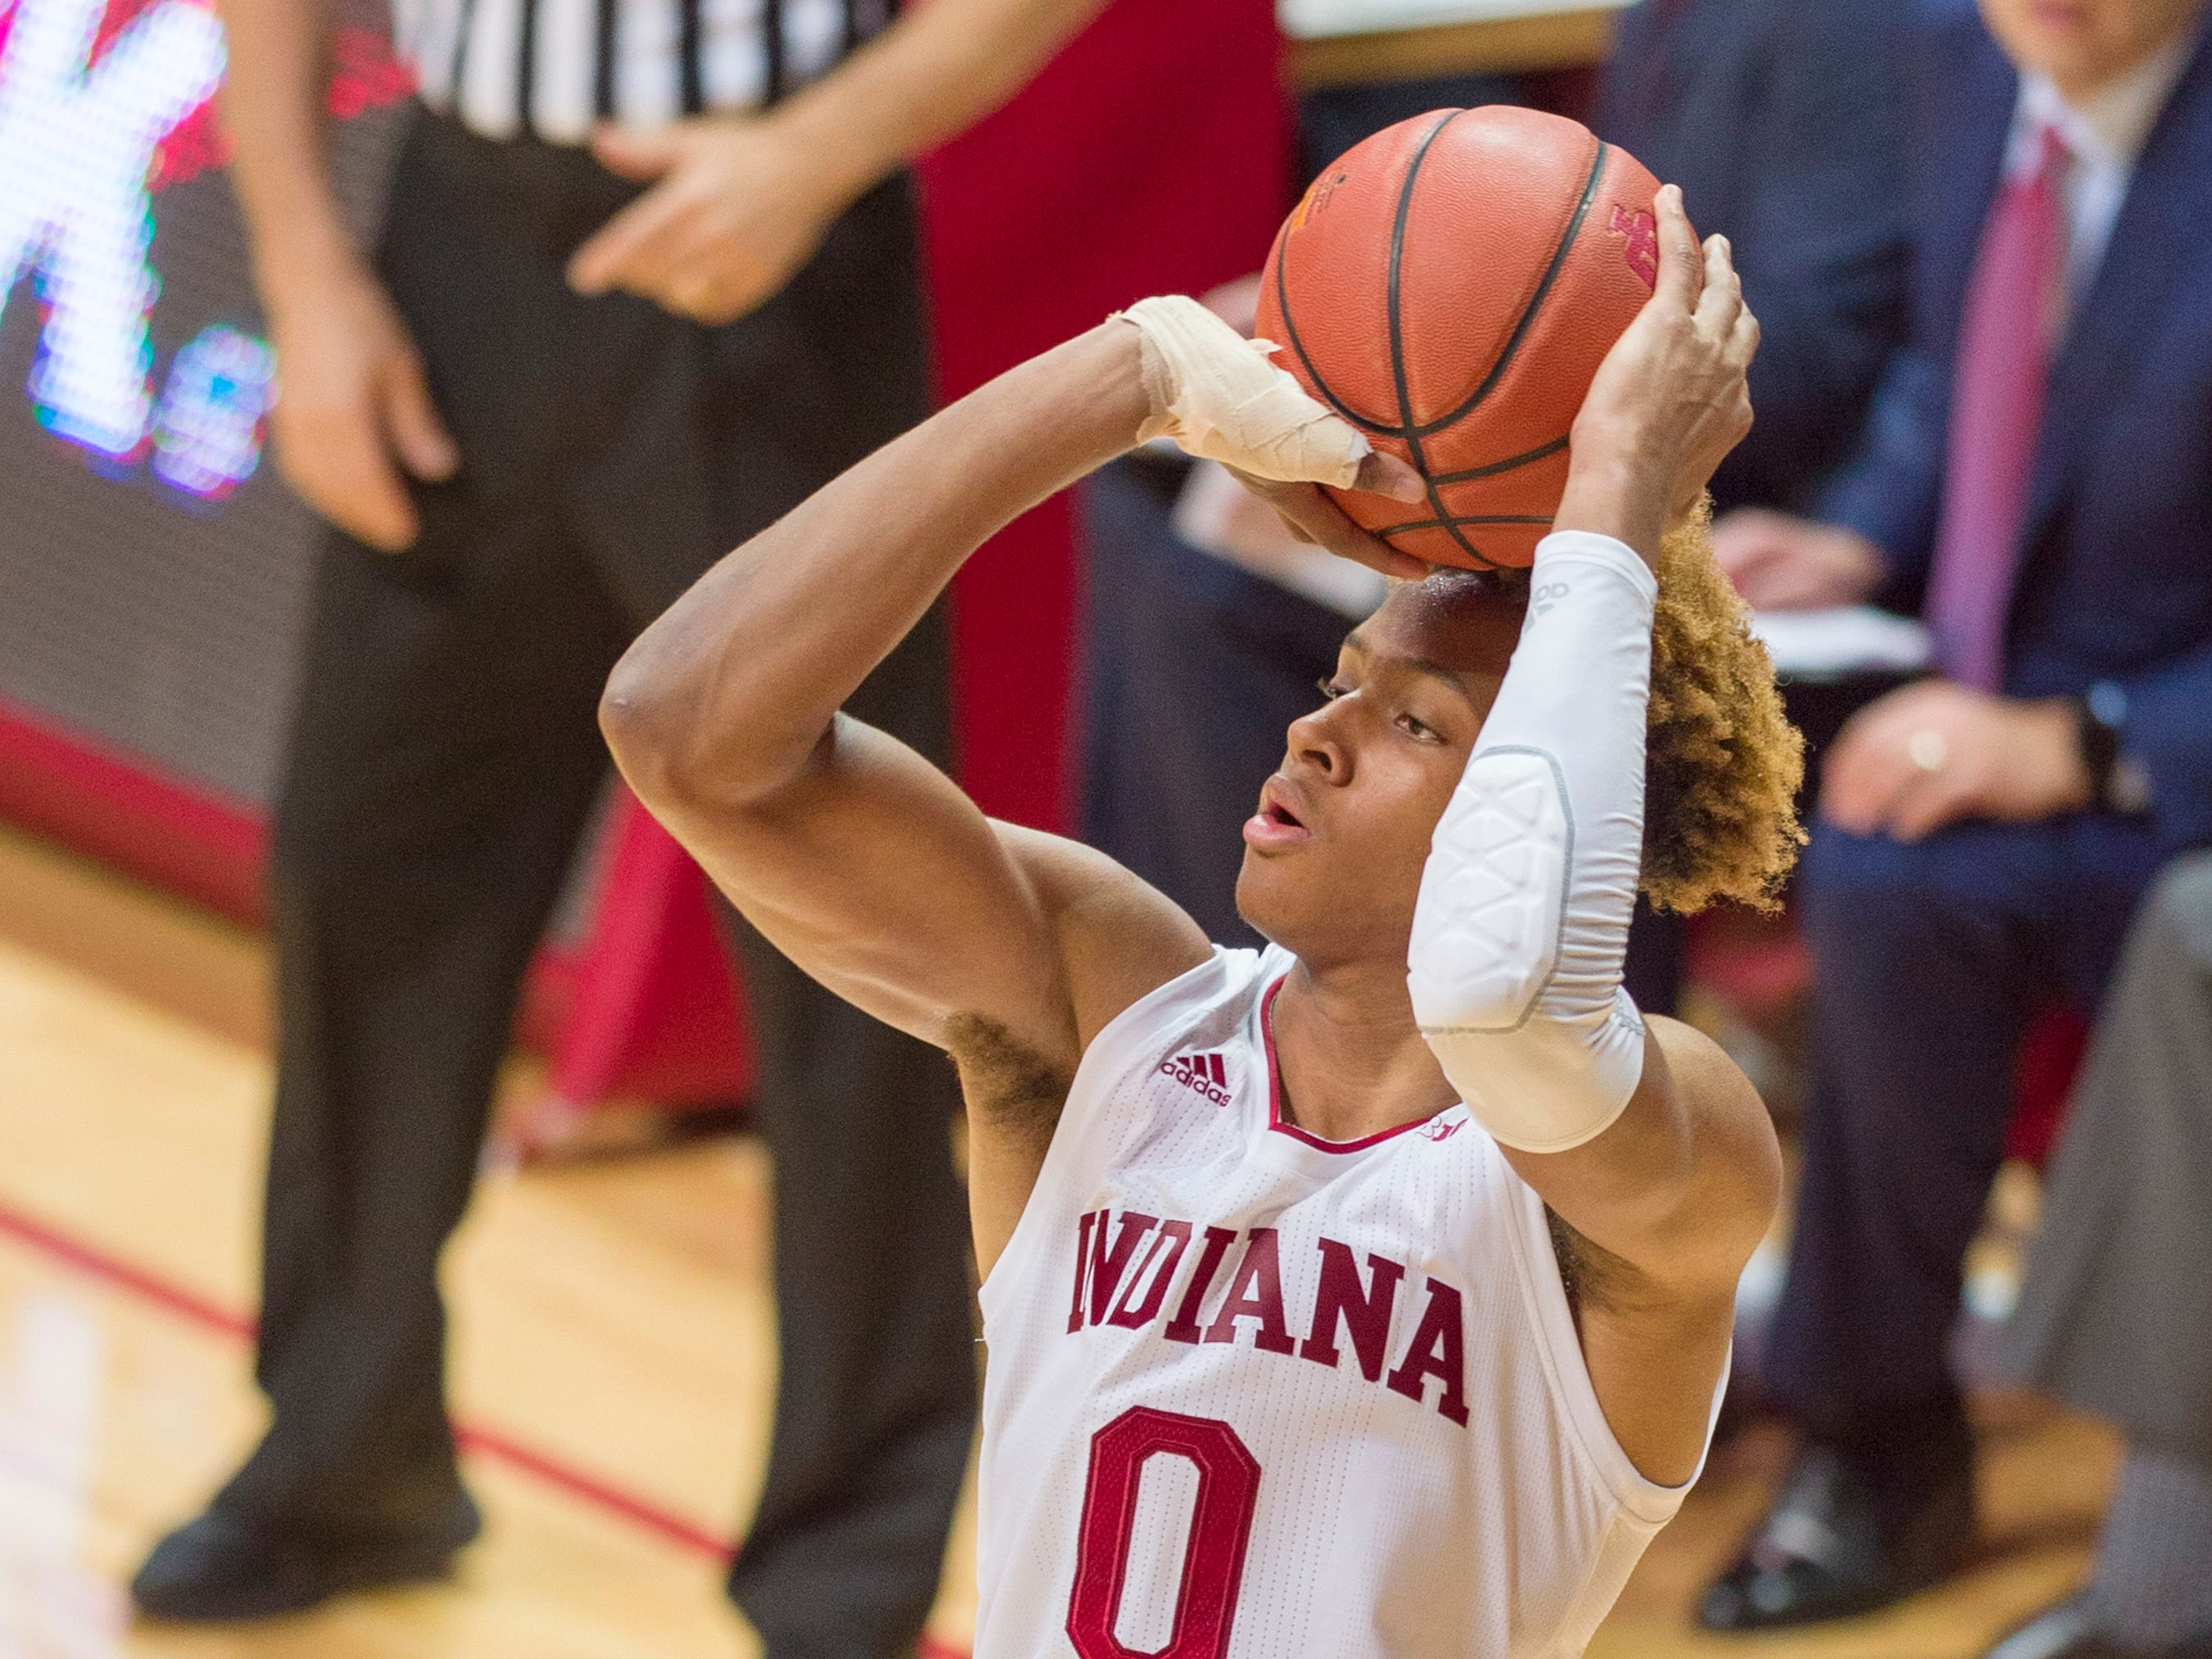 Indiana guard Romeo Langford (0) shoots during the second half of an NCAA college basketball game against Northwestern Saturday, Dec. 1, 2018, in Bloomington, Ind. Indiana won 68-66.